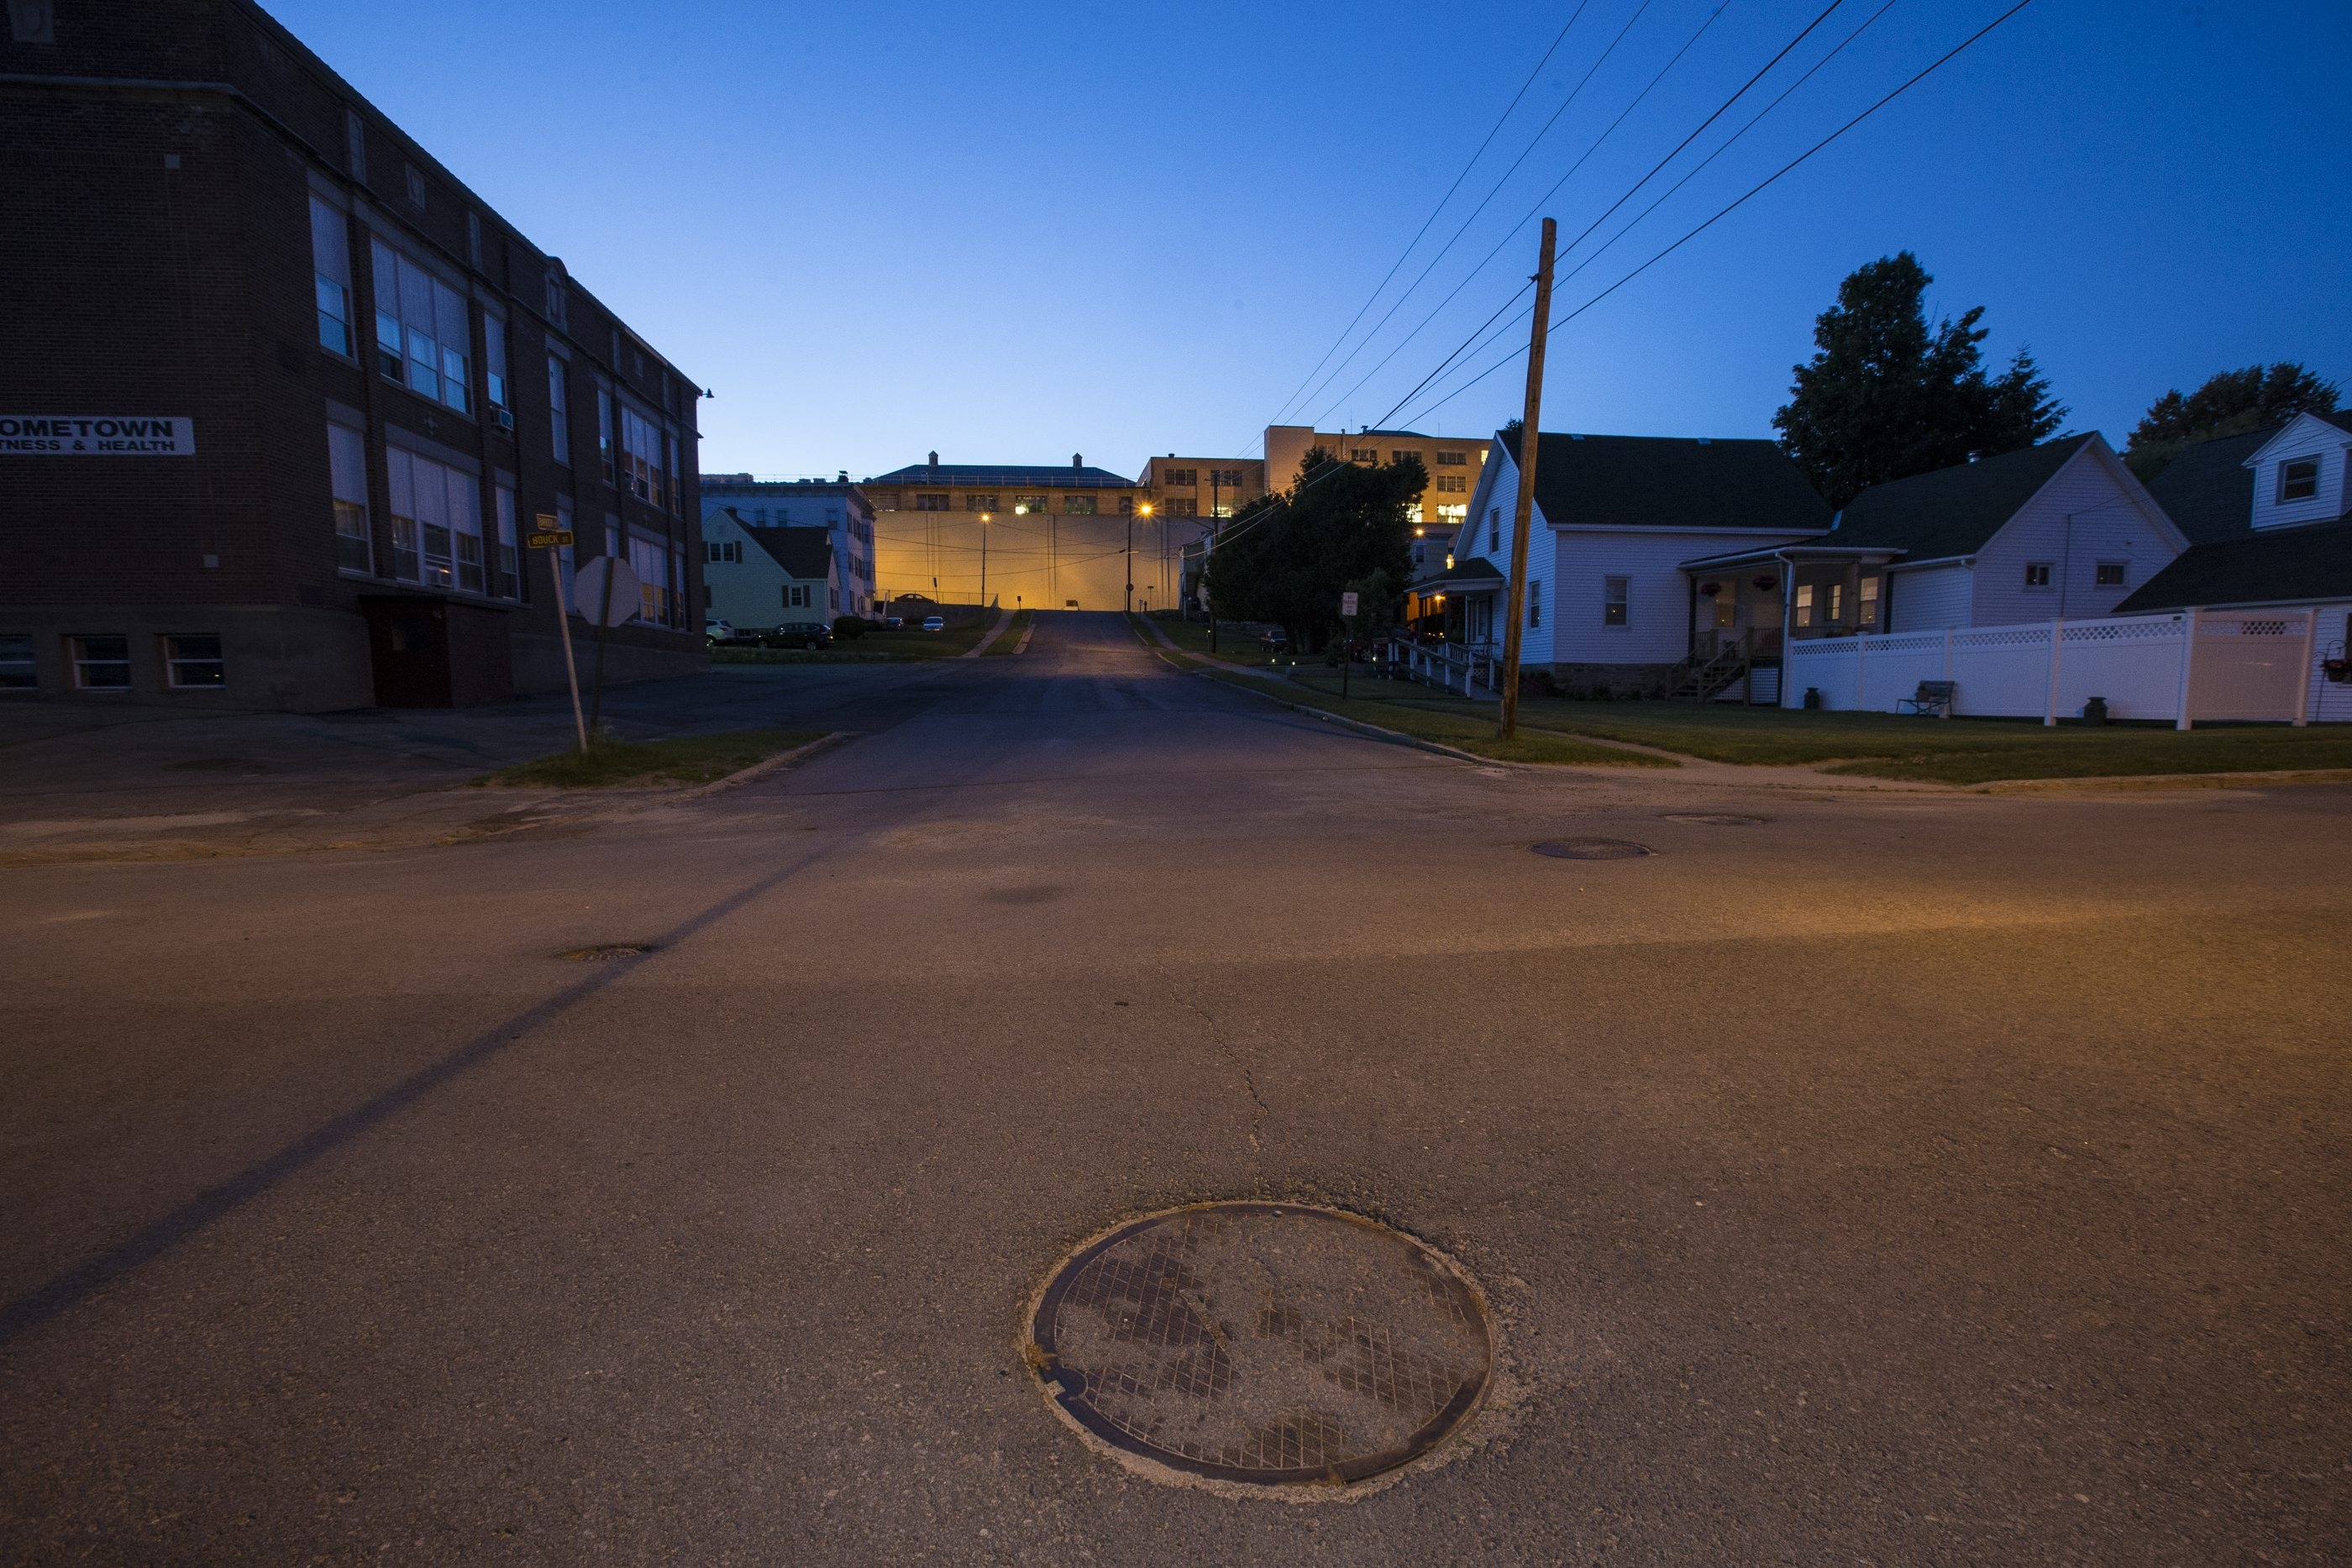 A manhole at the intersection of Bouck and Barker streets in Dannemora allowed Richard Matt and David Sweat a way out of Clinton Correctional Facility. The two overcame incredible odds to escape, eluding authorities for three weeks in the Adirondacks until Matt's discovery and consequent death on Friday.